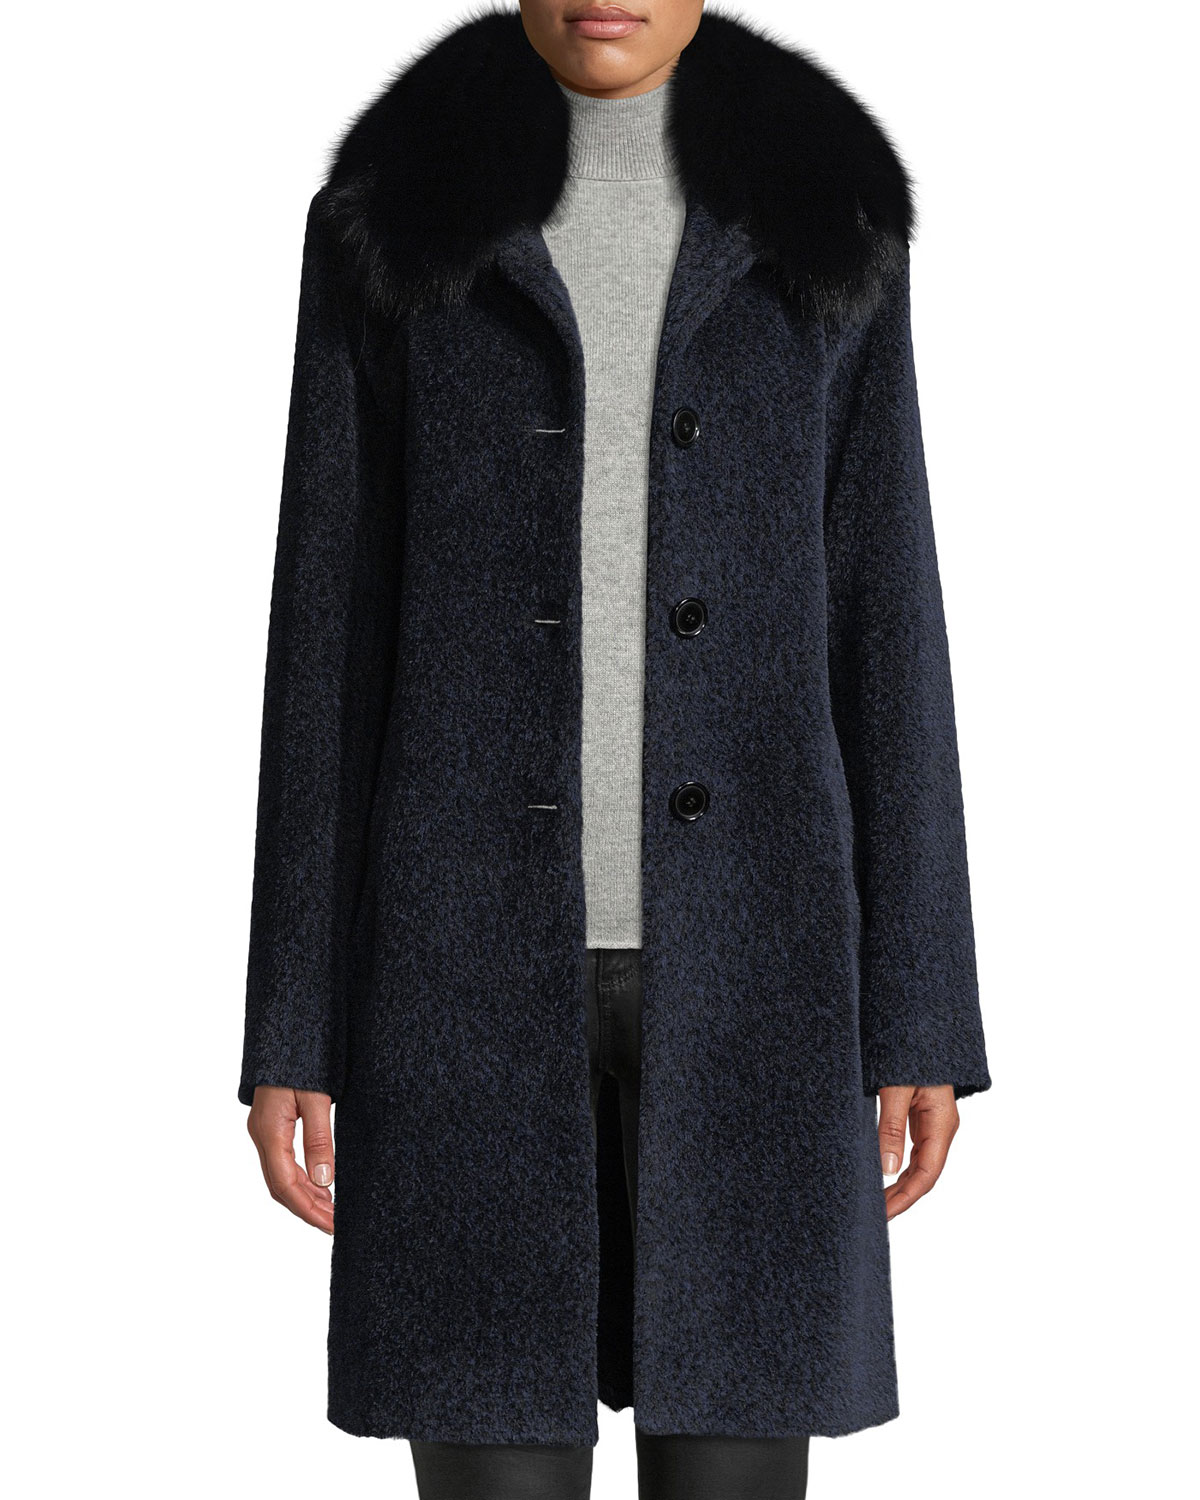 cocoon-button-coat-w_-fur-collar by sofia-cashmere